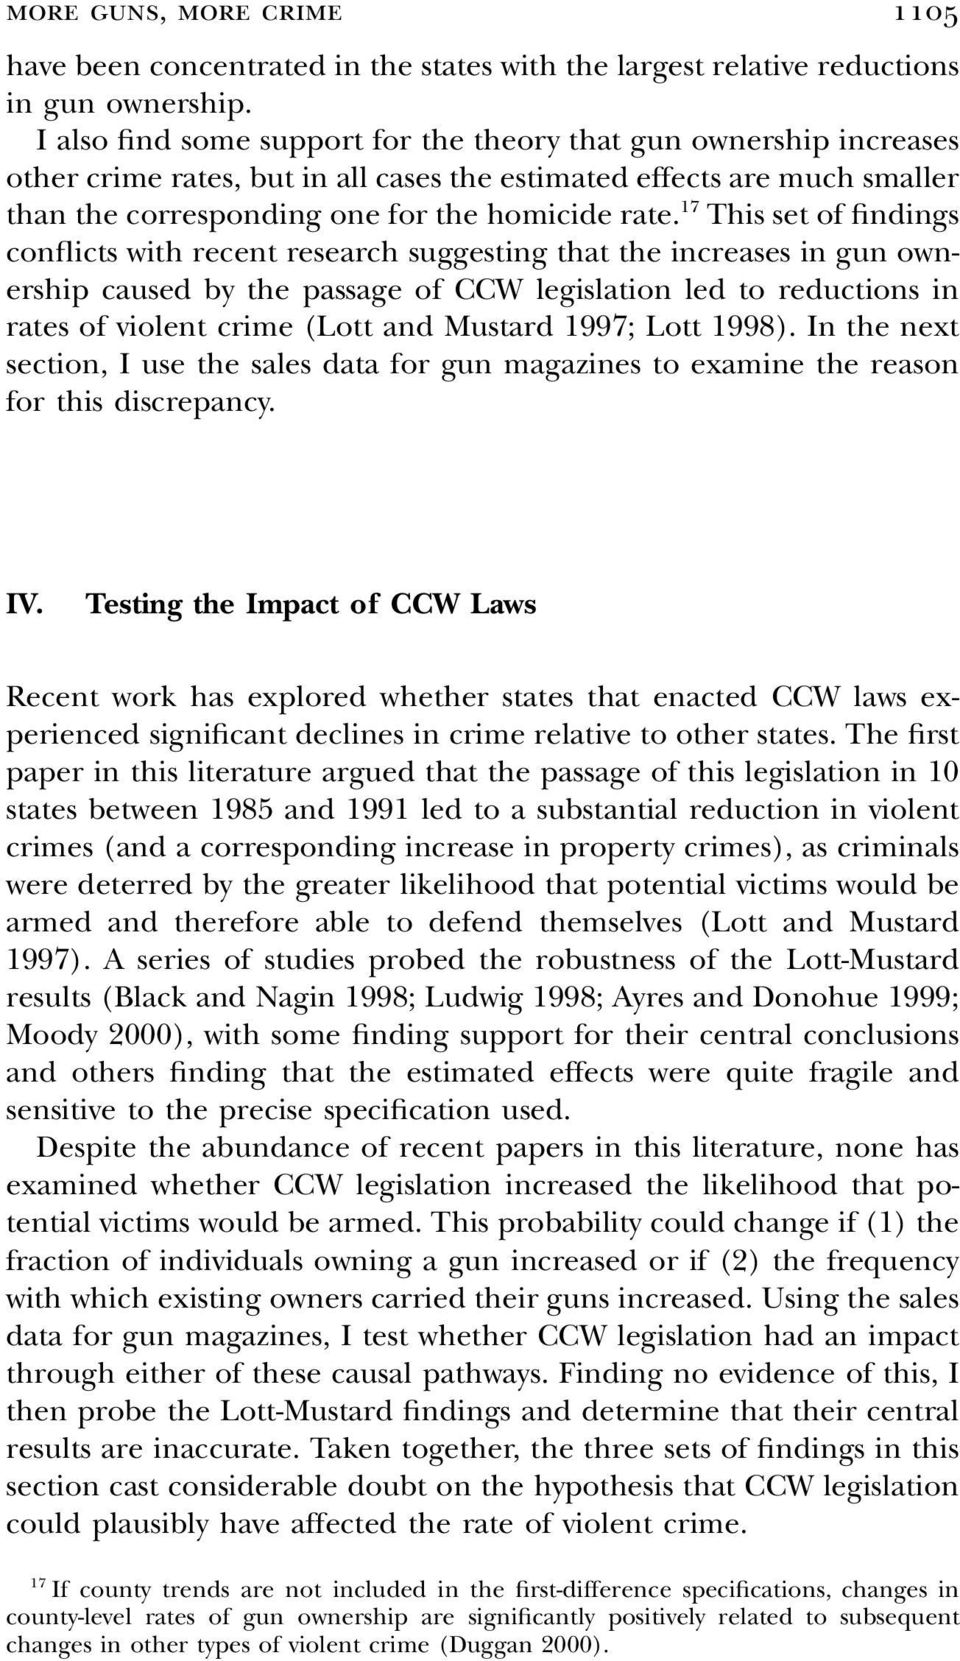 17 This set of findings conflicts with recent research suggesting that the increases in gun ownership caused by the passage of CCW legislation led to reductions in rates of violent crime (Lott and